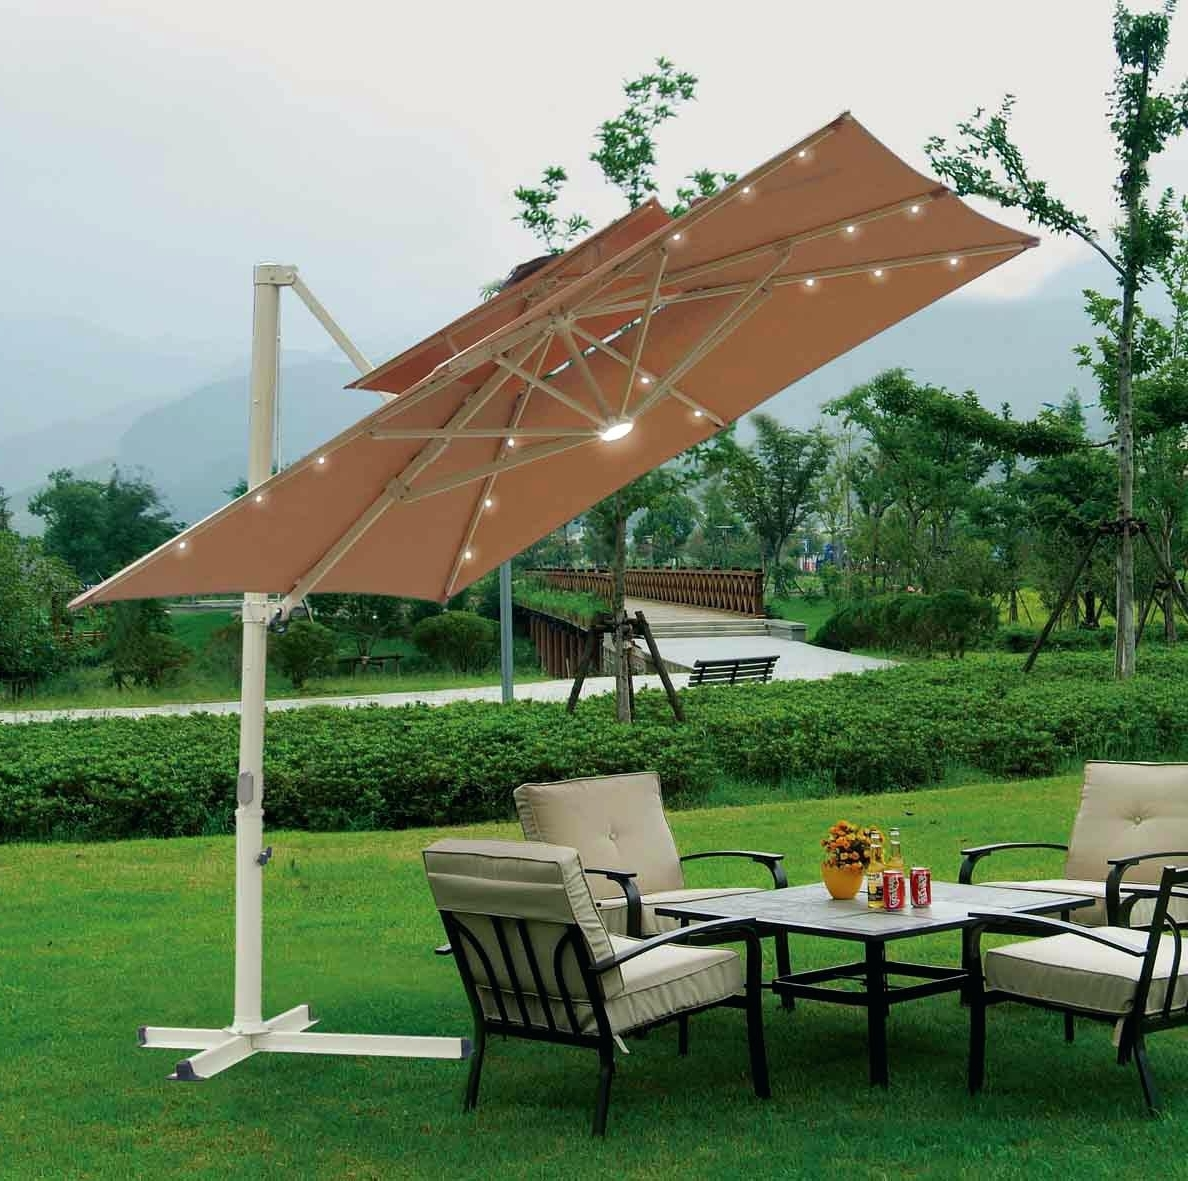 Offset Patio Umbrella Wind Stabilizer • Patio Ideas Throughout Favorite Offset Patio Umbrellas (View 16 of 20)